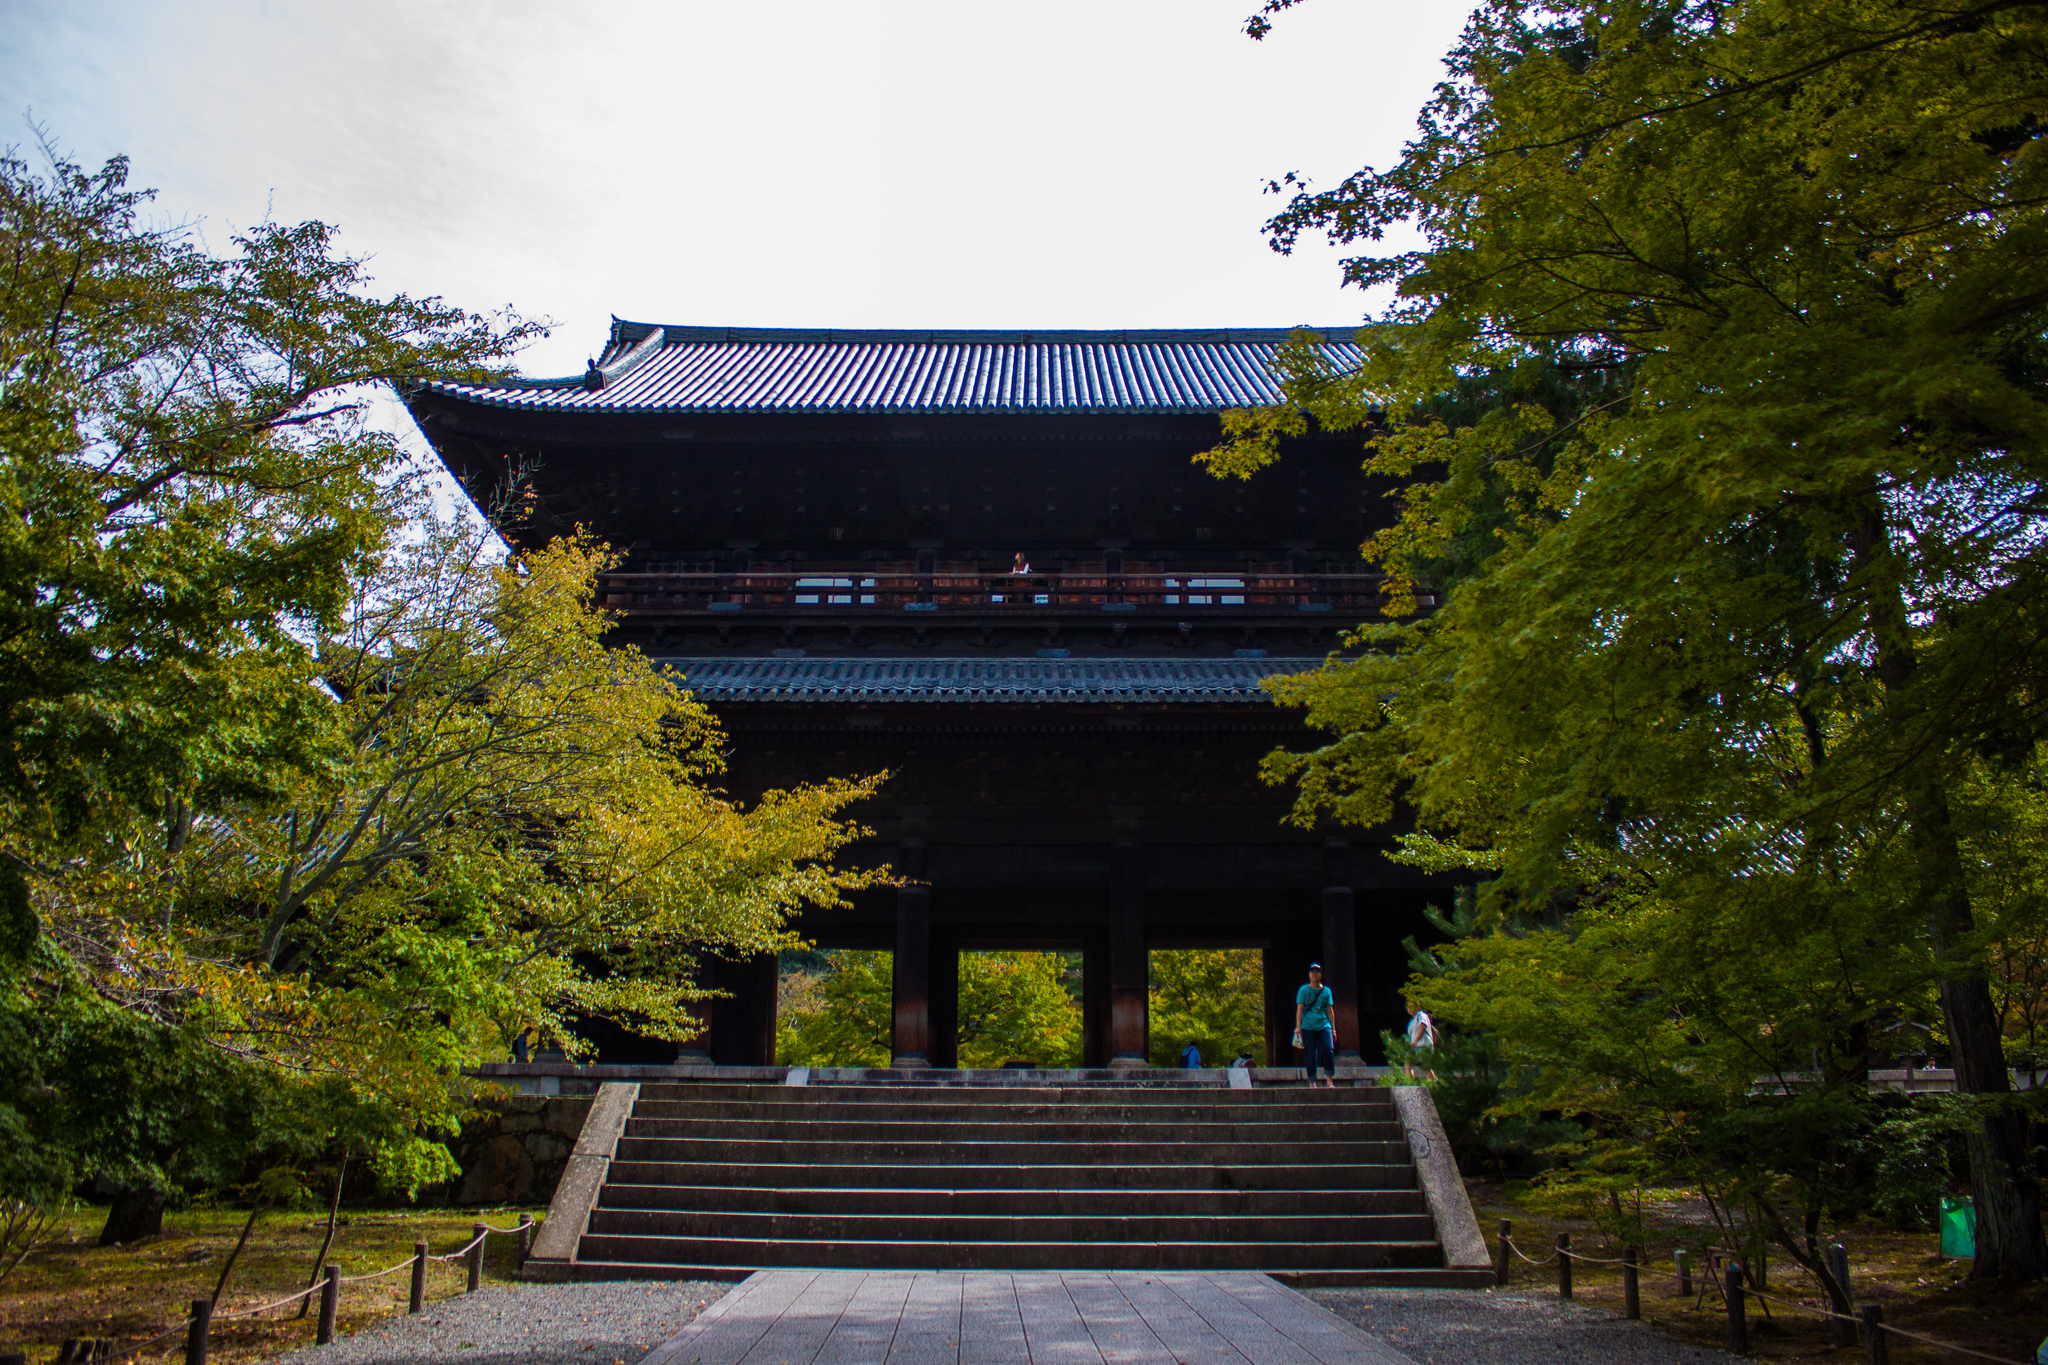 The Top 13 Things to Explore along Kyoto's Philosopher's Path